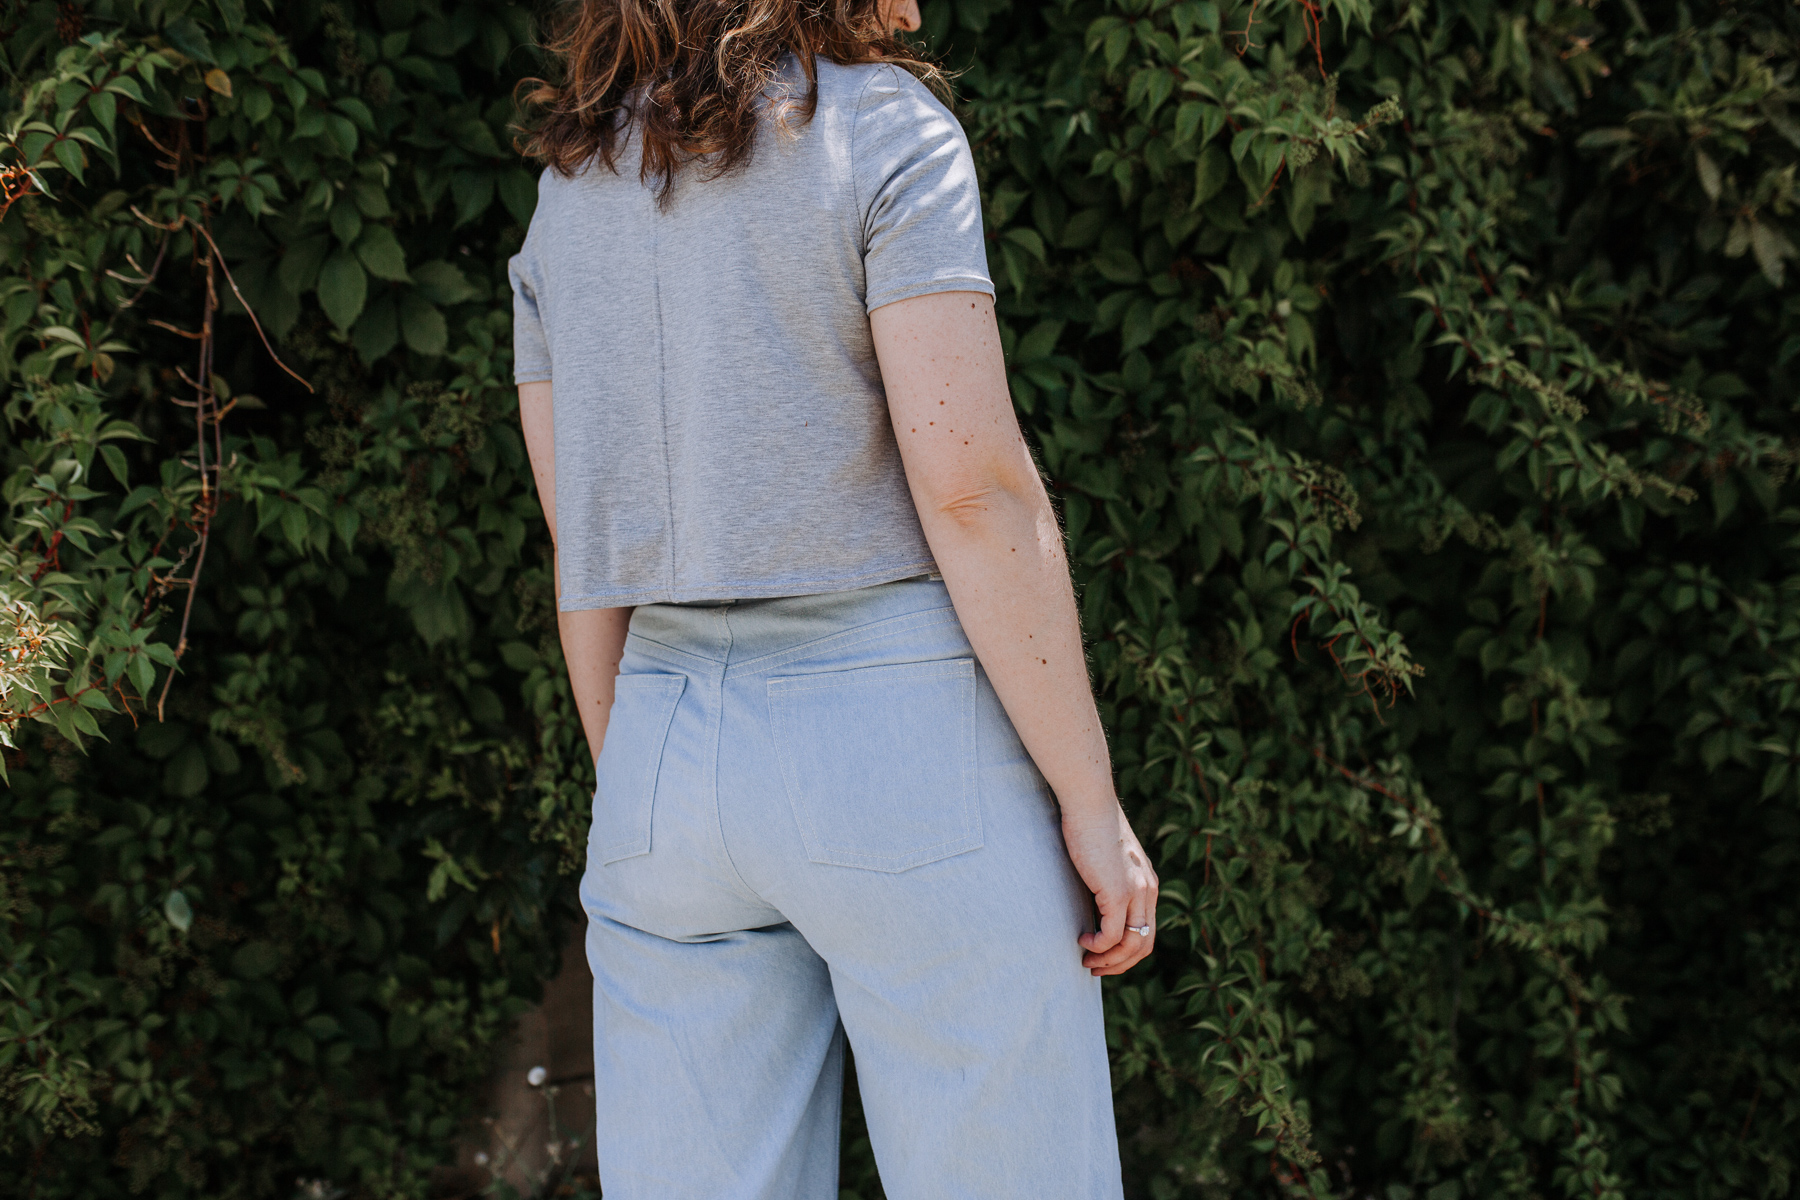 Megan Nielsen wide leg Dawn jeans in light enzyme wash denim + Floreat knit crop top in grey marle